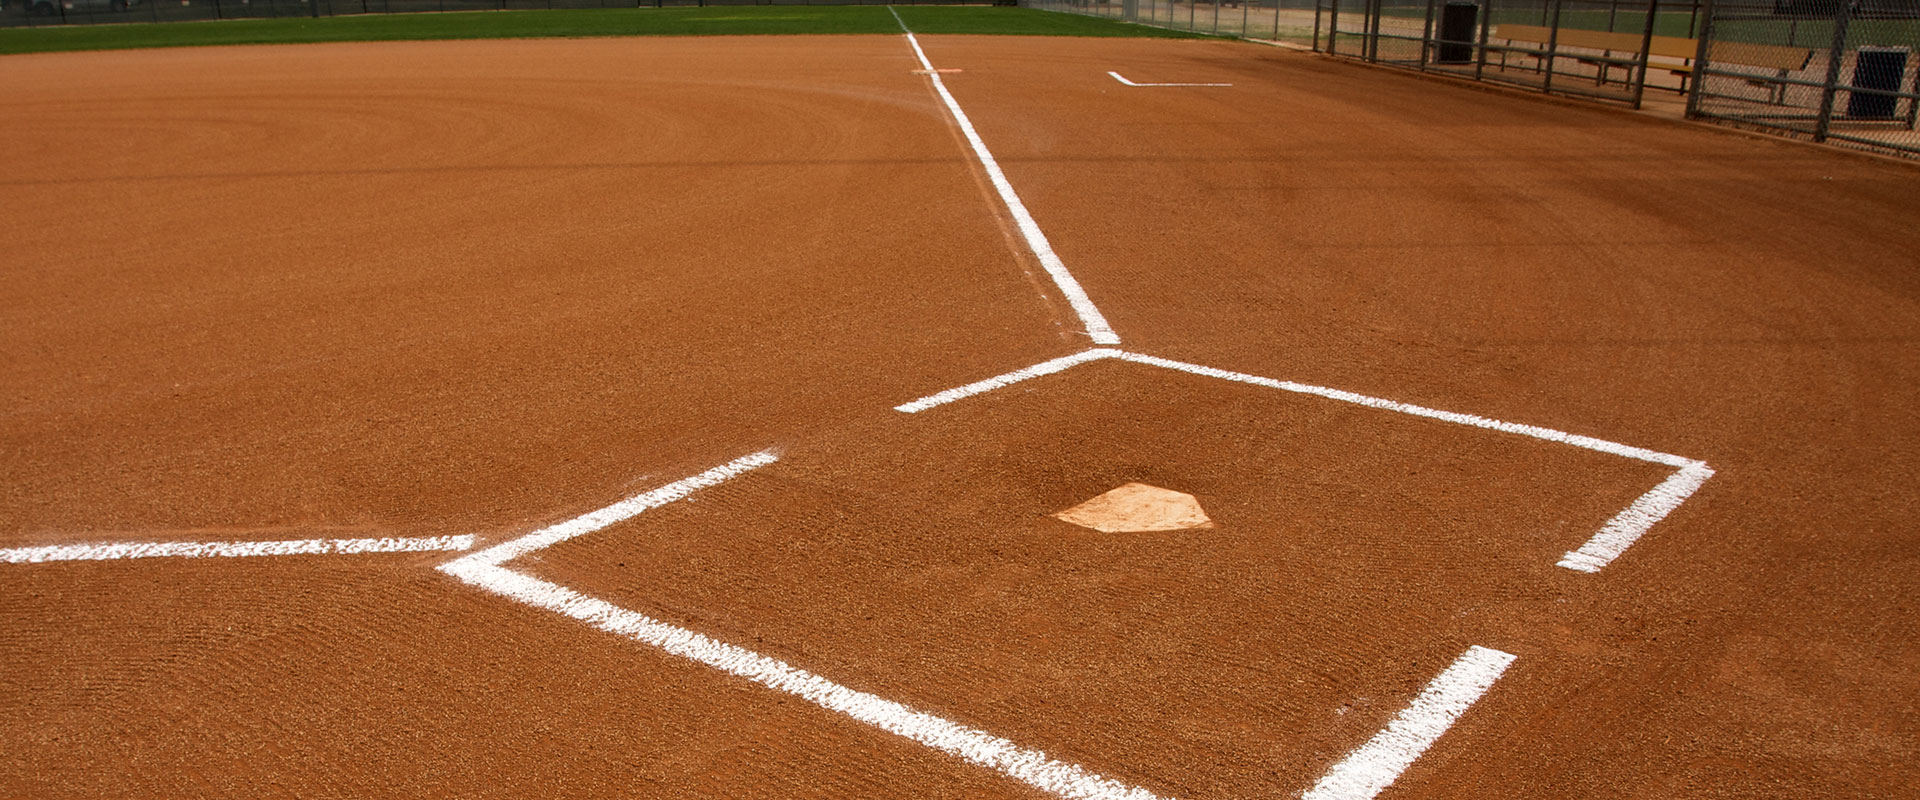 infield mix just used on a baseball field